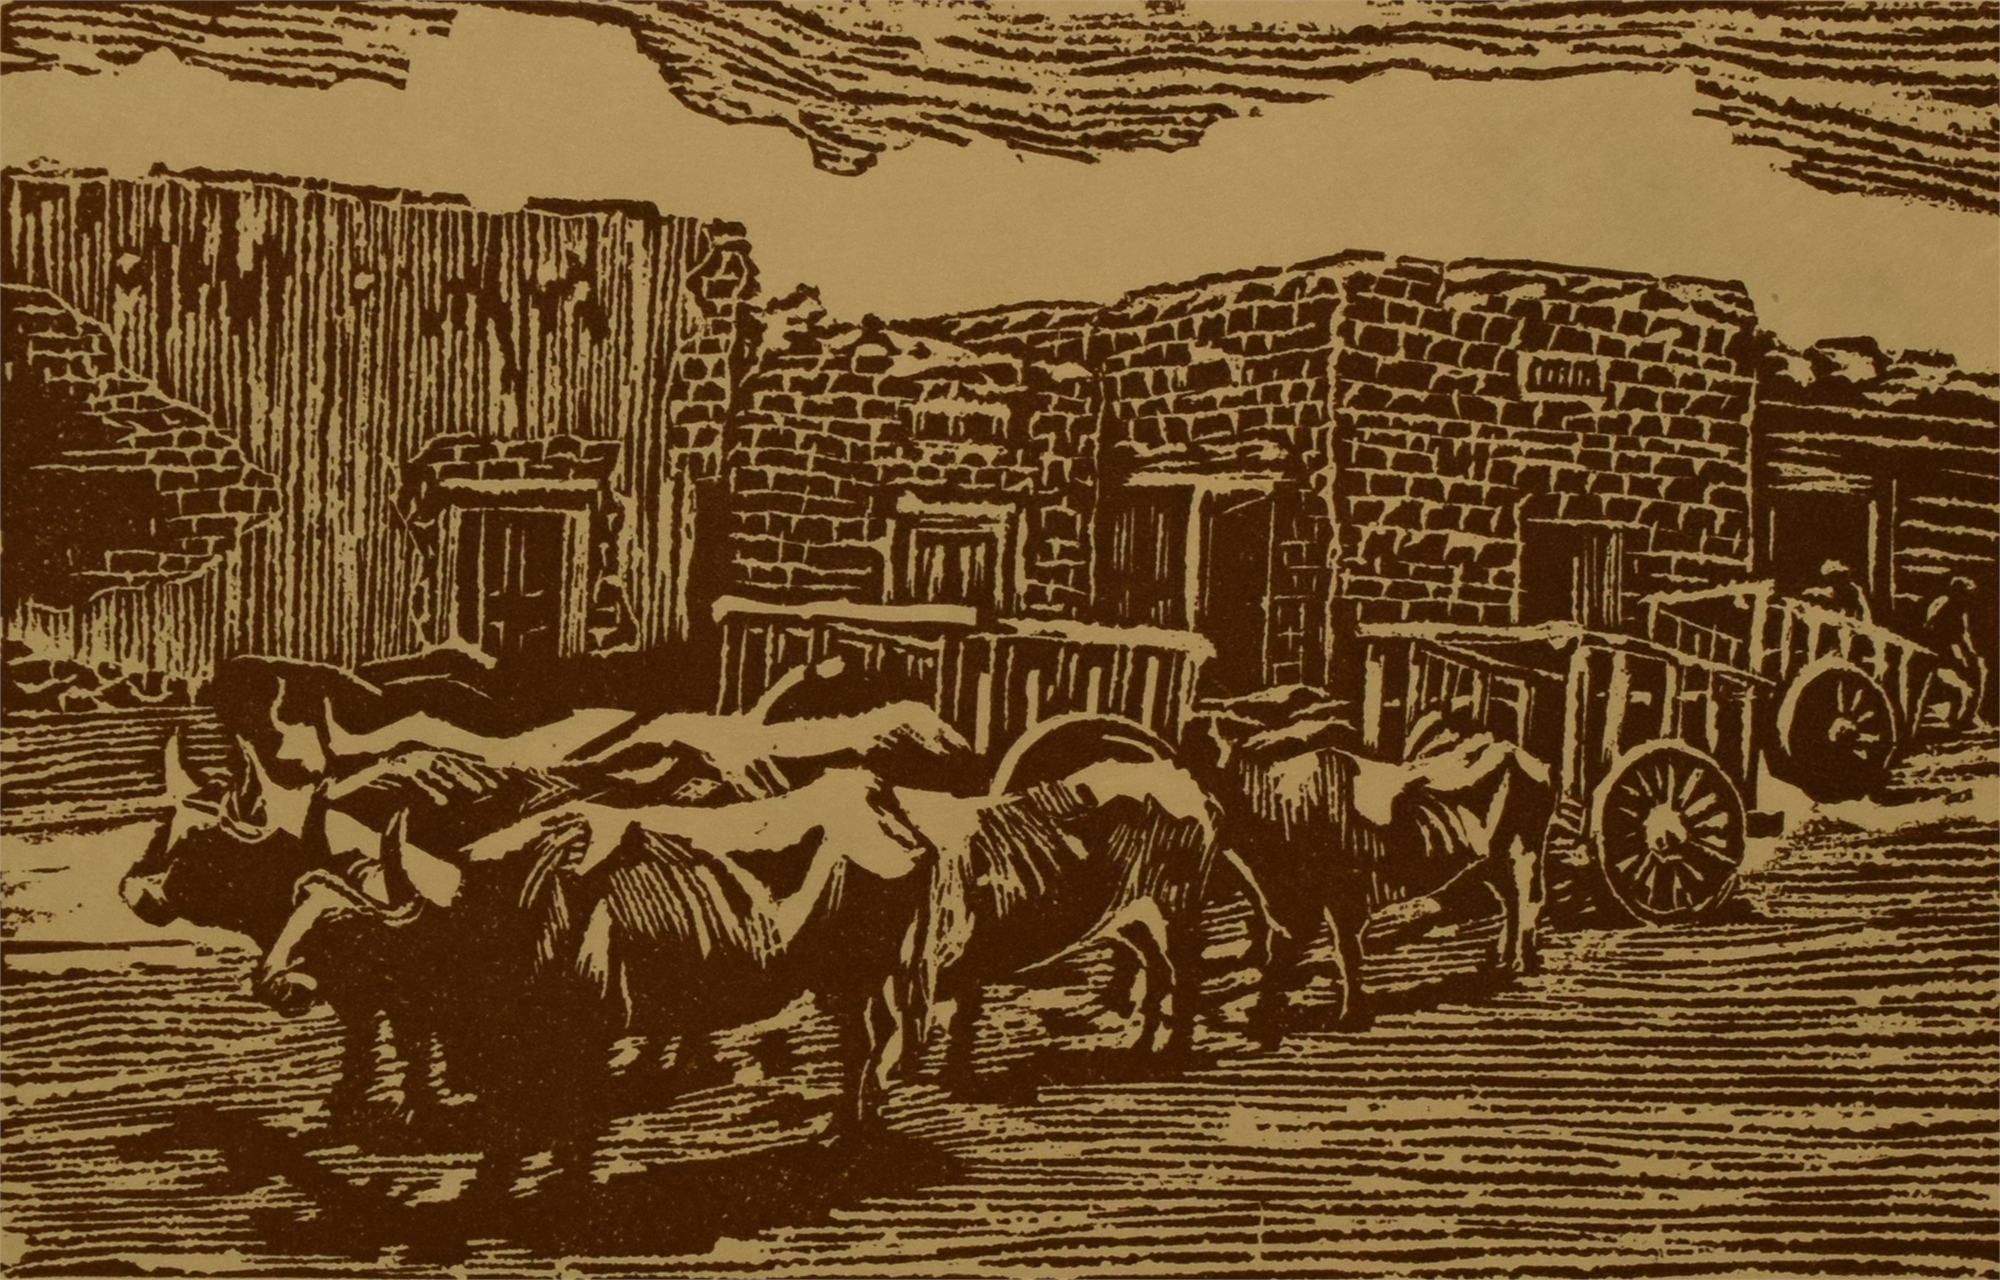 Oxen and Carts by Anna Keener